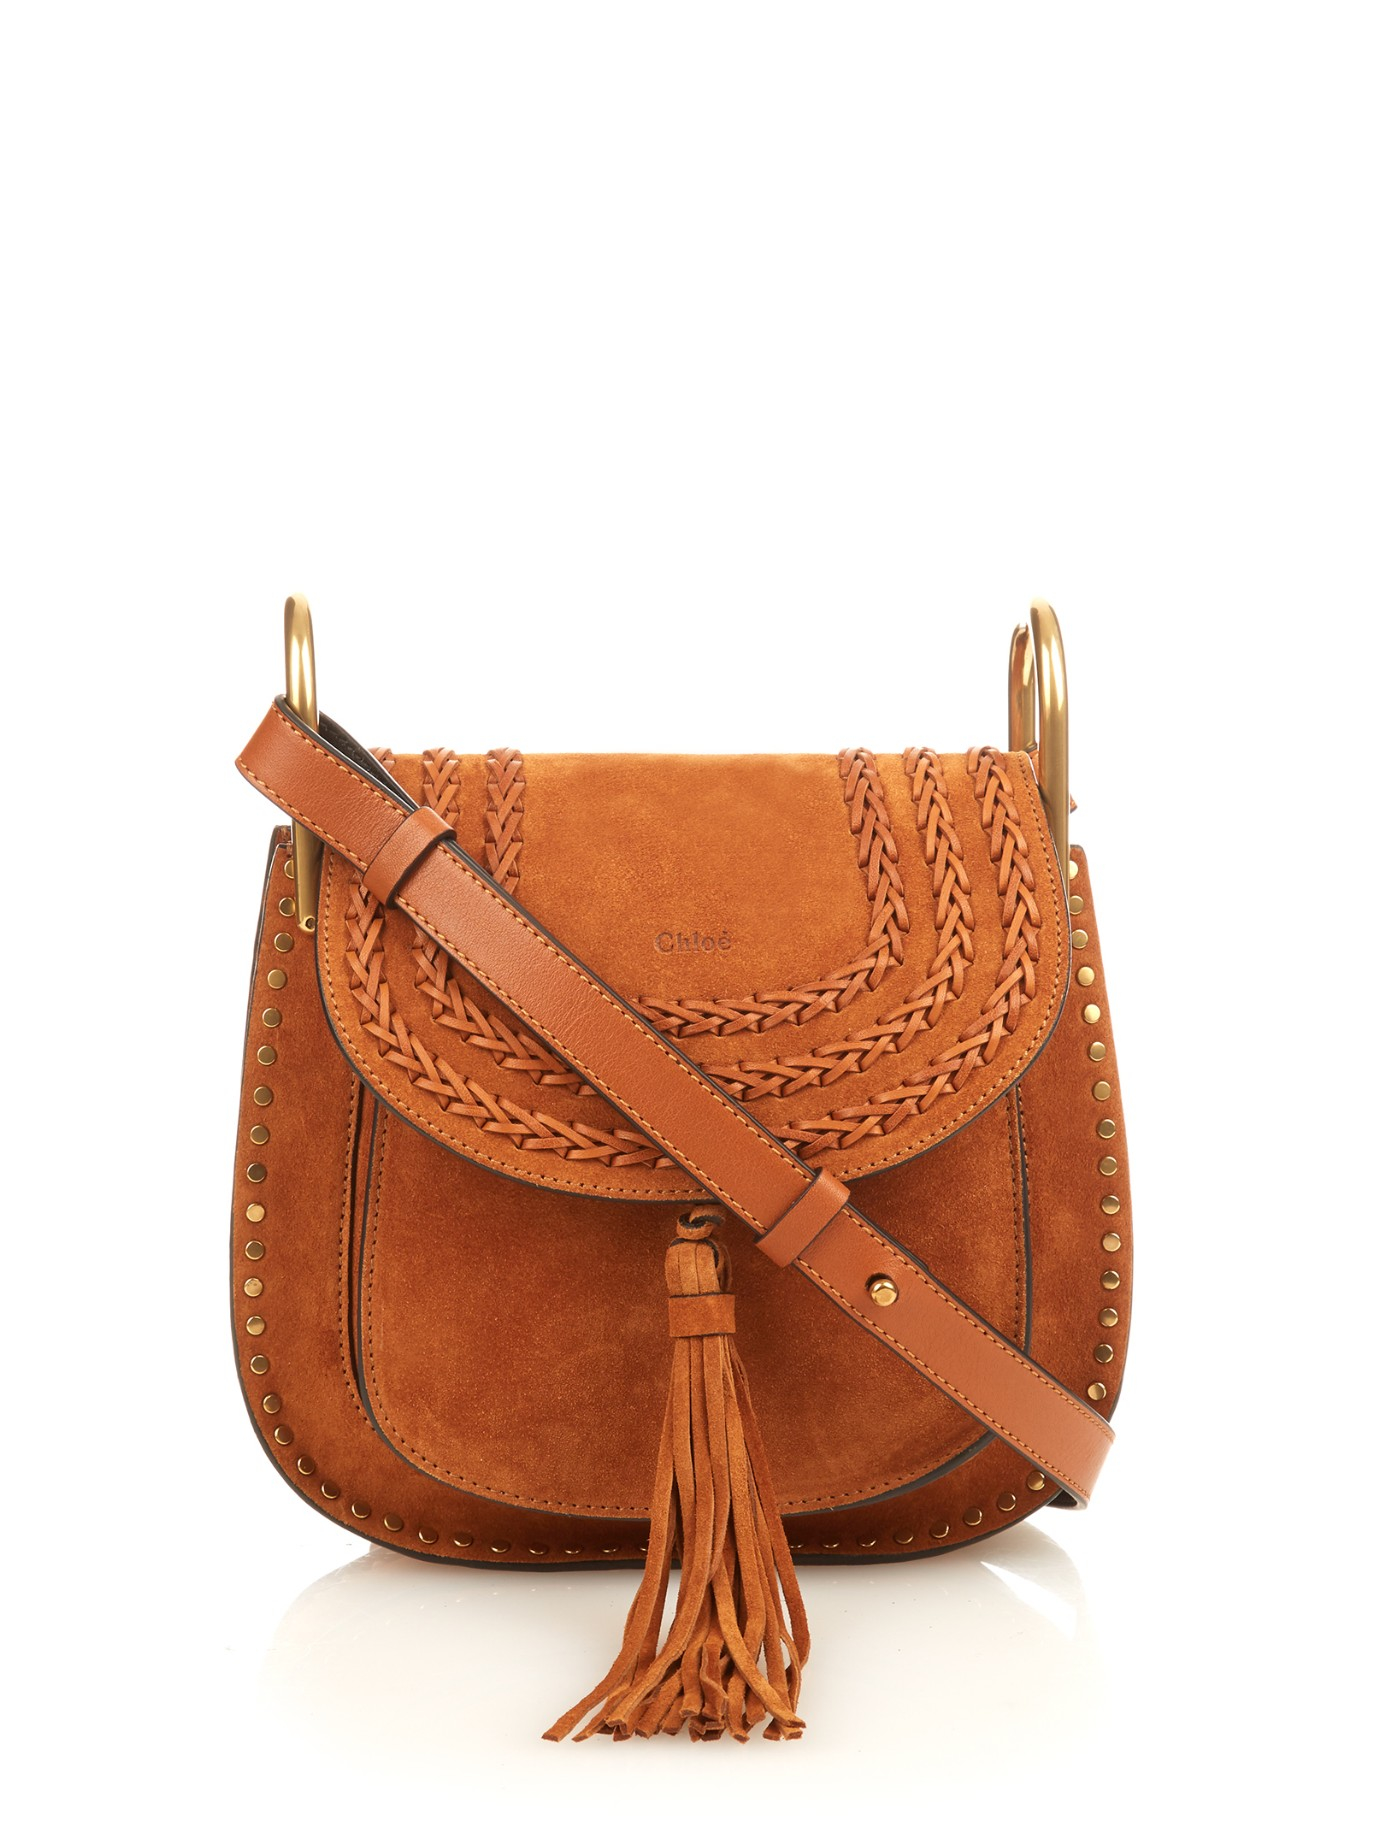 c7a7c9b365 Lyst - Chloé Hudson Small Suede Cross-body Bag in Brown